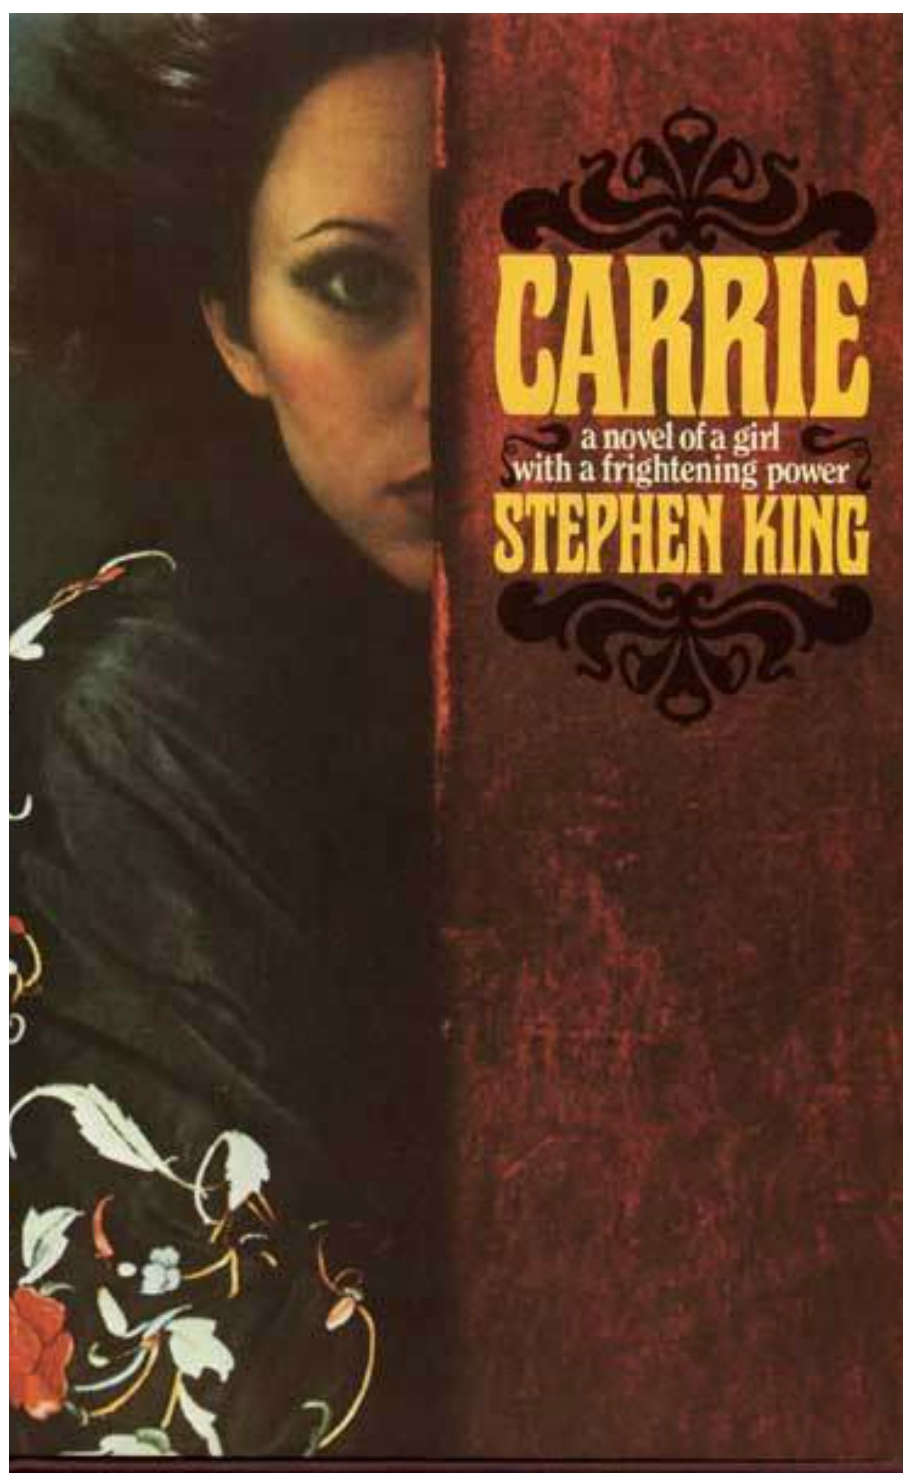 carrie by stephen king essay example Carrie uses things such as witchcraft and stephen king: the horror essay example - there was a period in america's history known stephen edwin king.